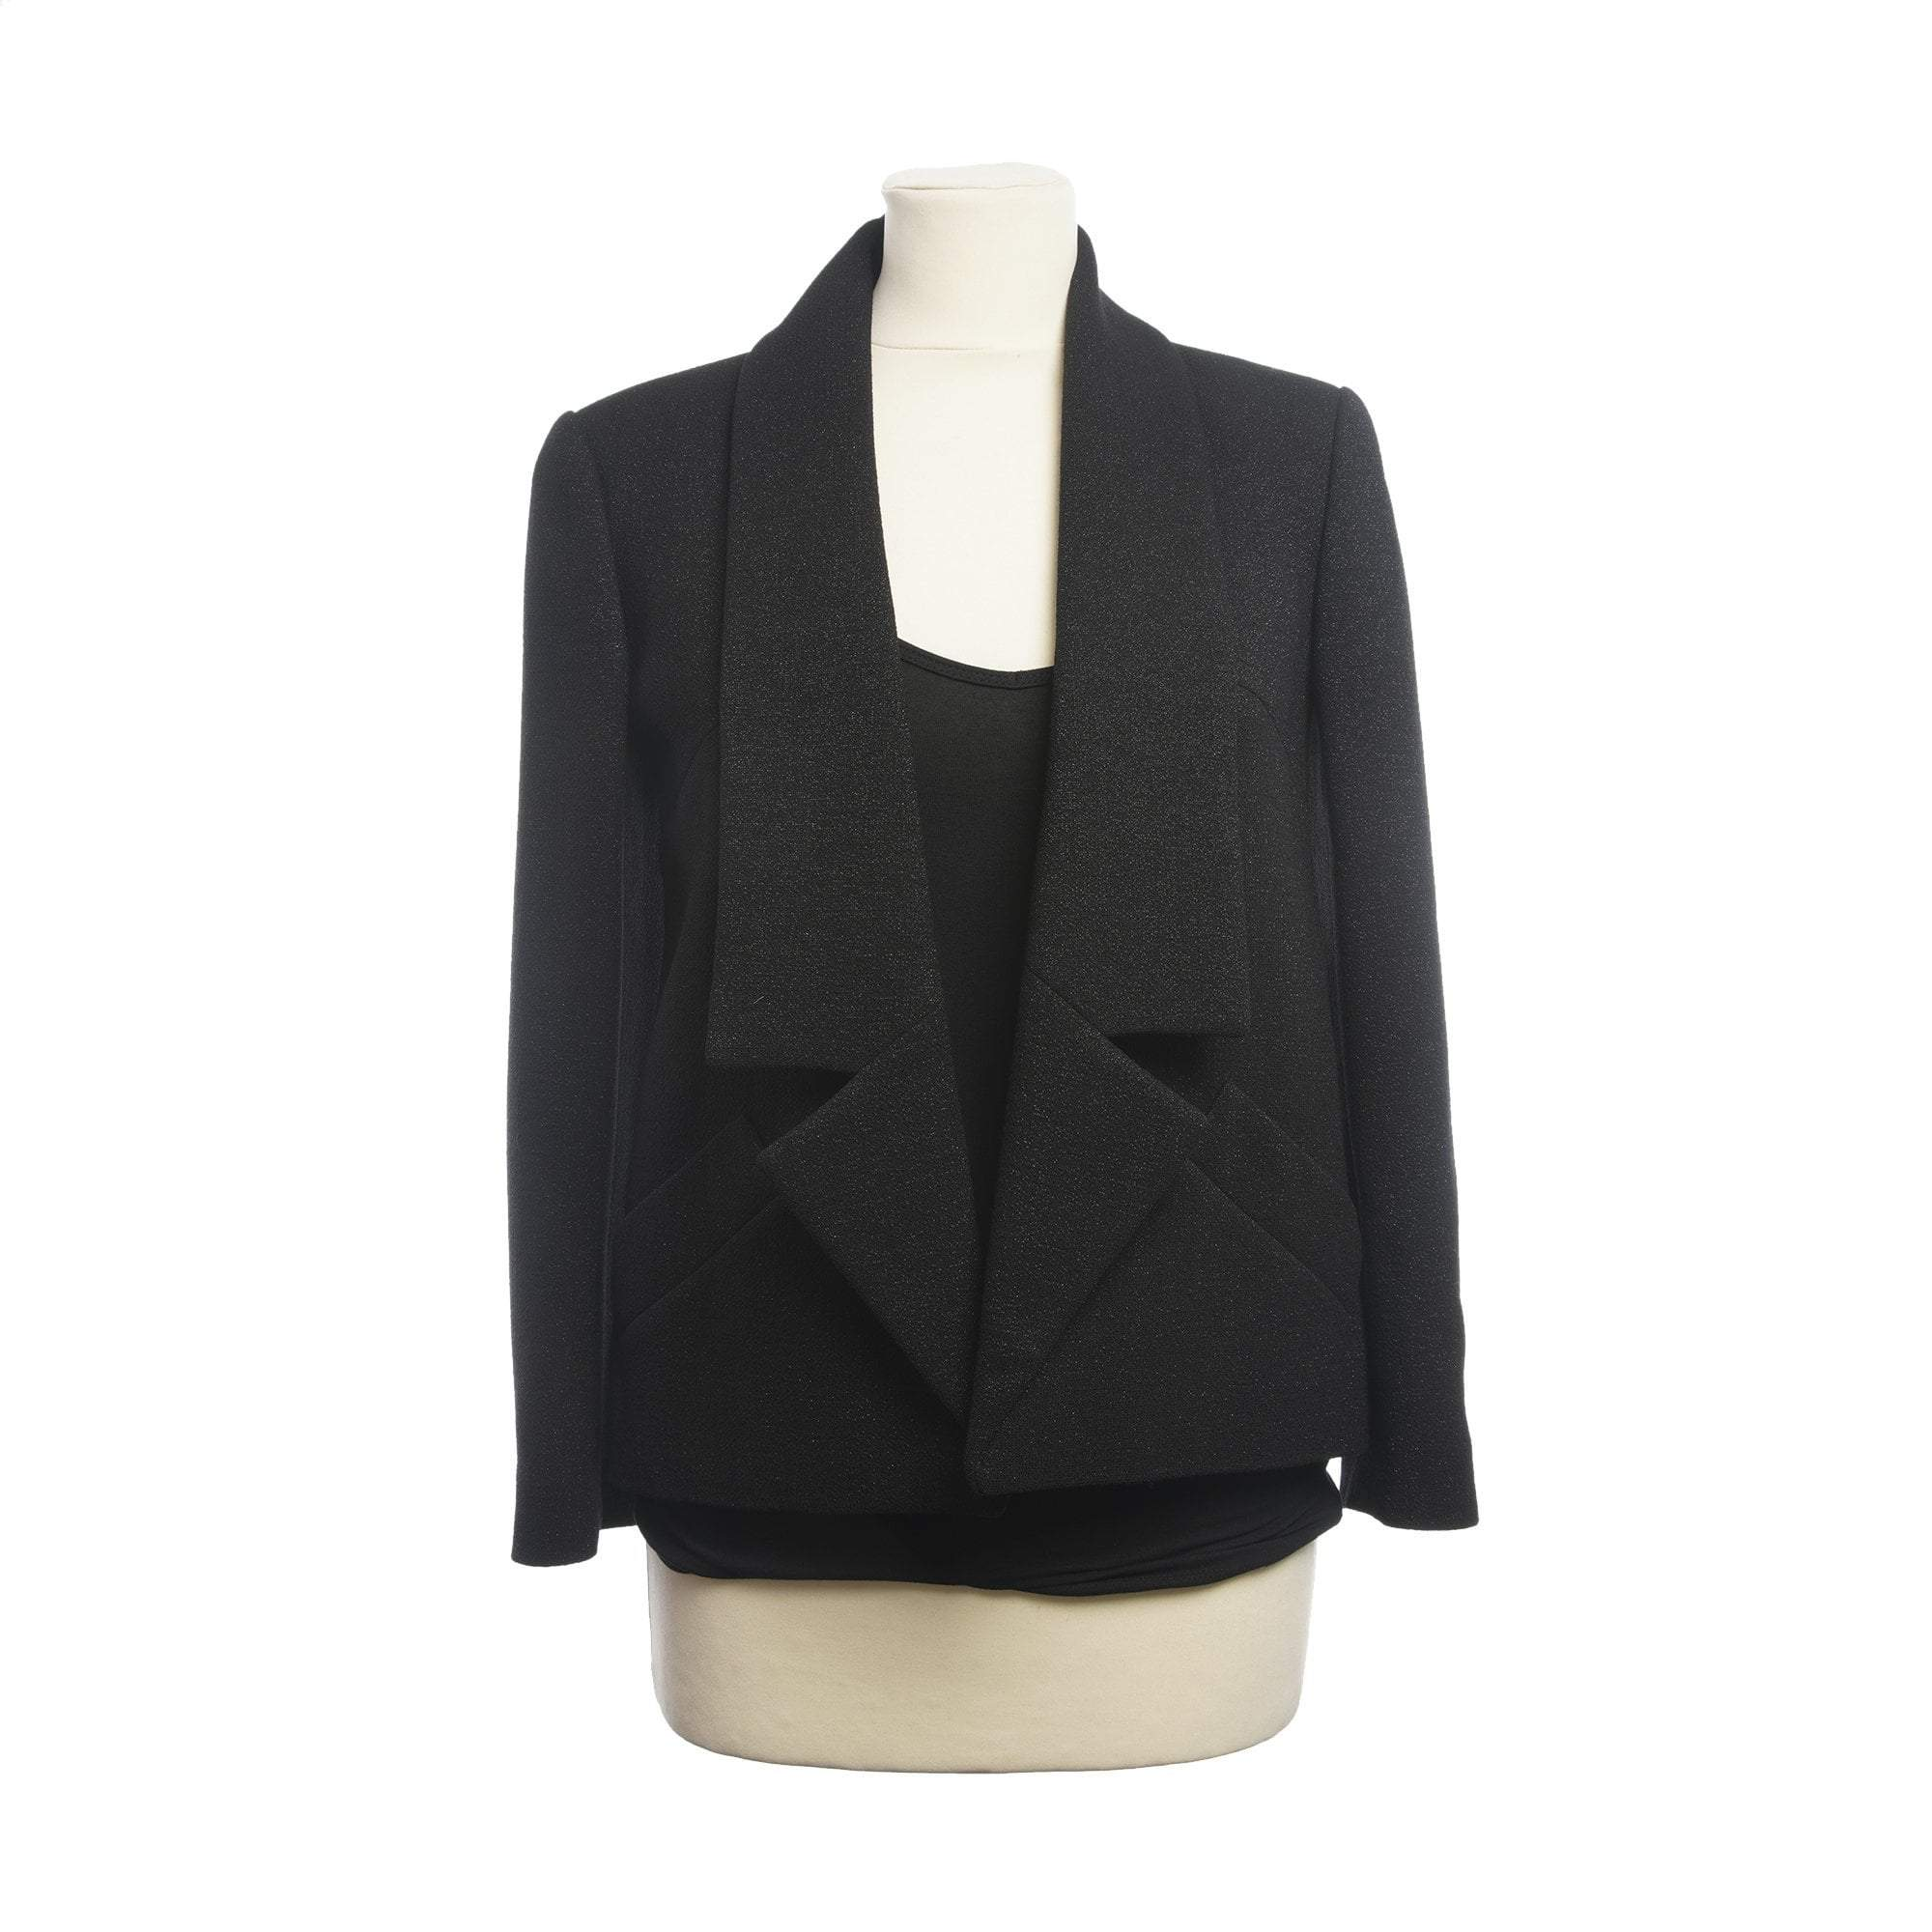 Chanel Black Shimmery Wool Blazer